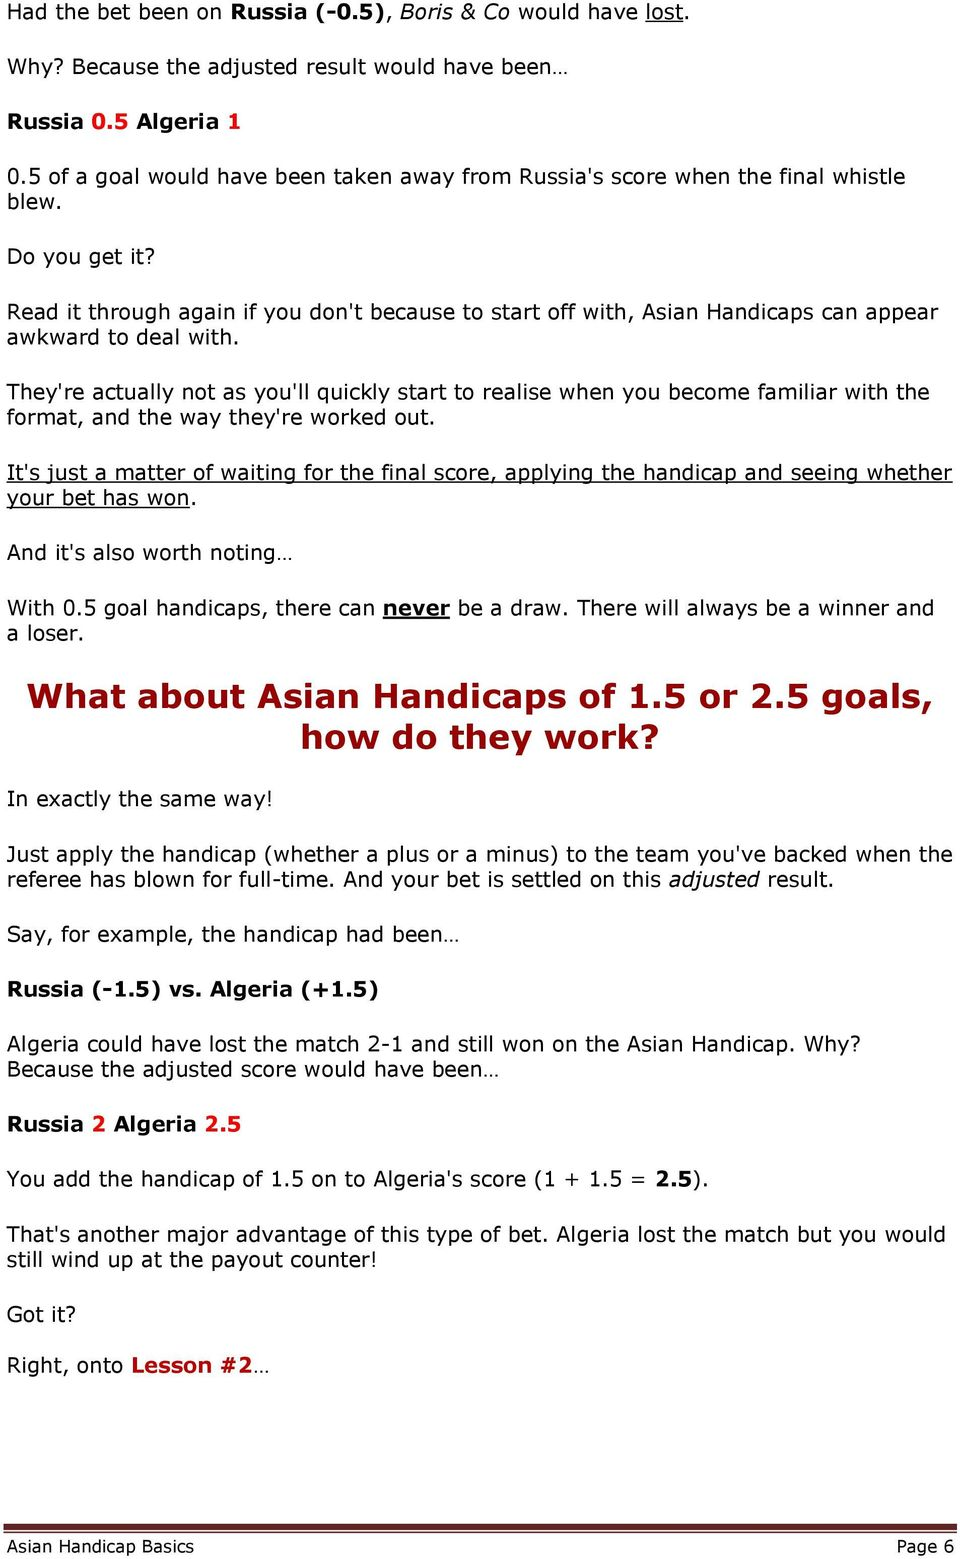 Read it through again if you don't because to start off with, Asian Handicaps can appear awkward to deal with.